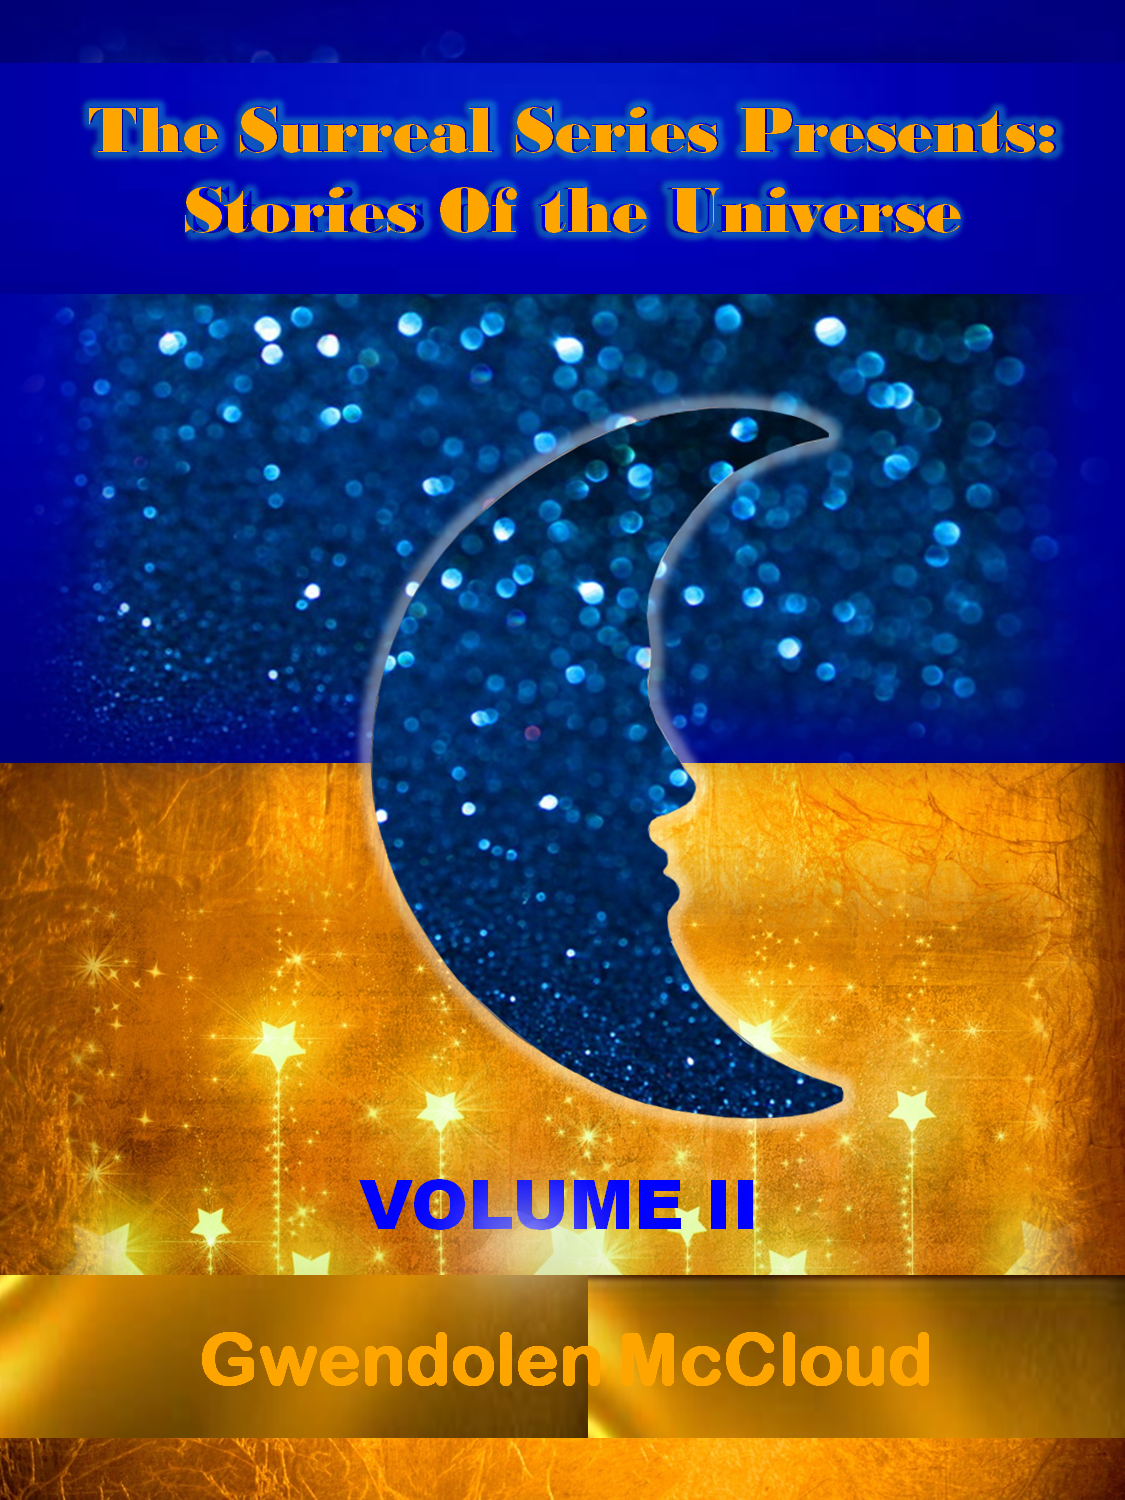 Universe Stories - Vol. 2.png